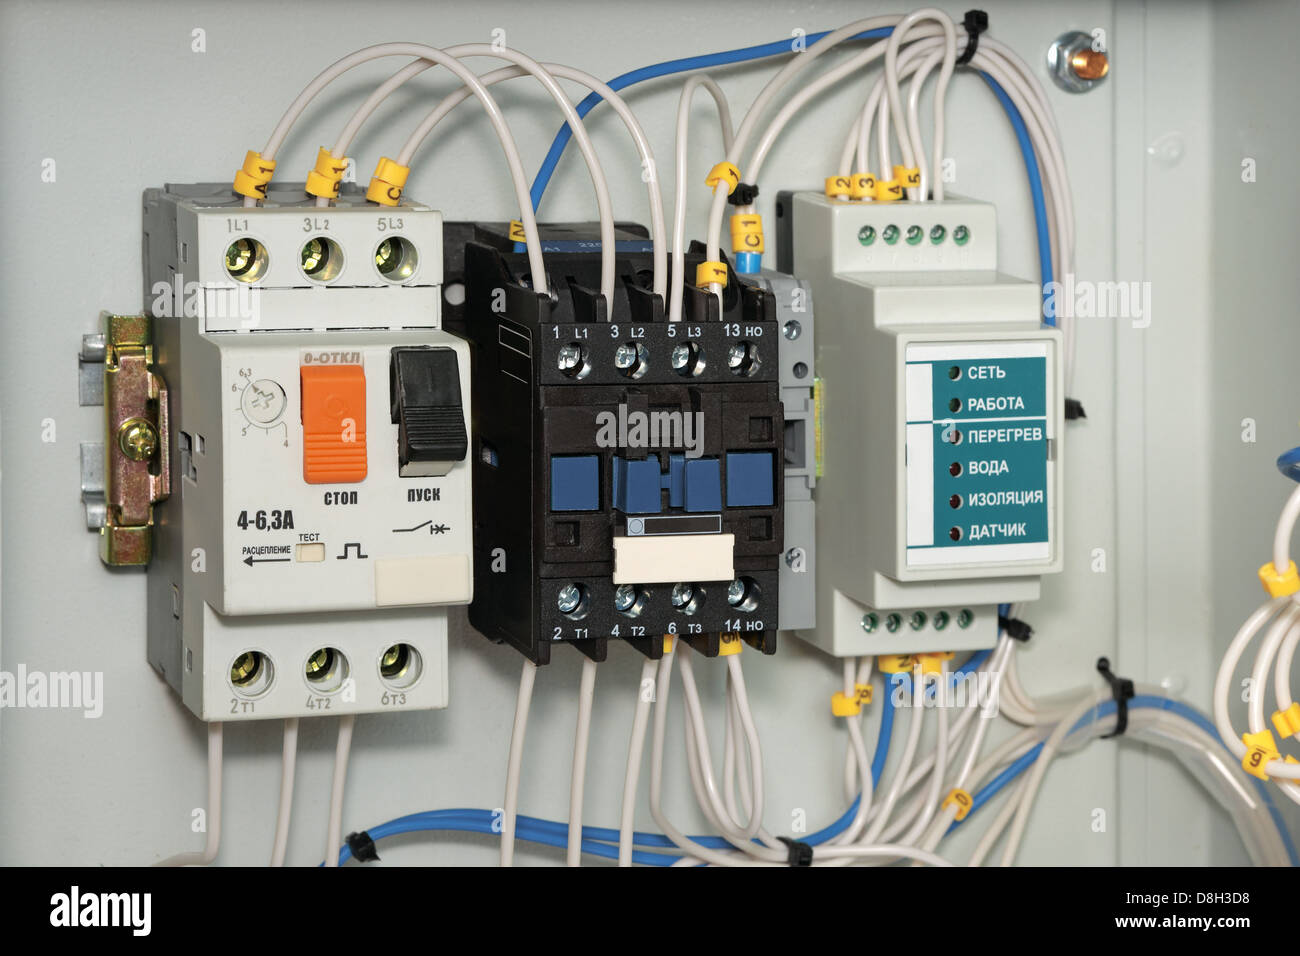 Components Of Fuse Box : Electrical panel control power electric circuit